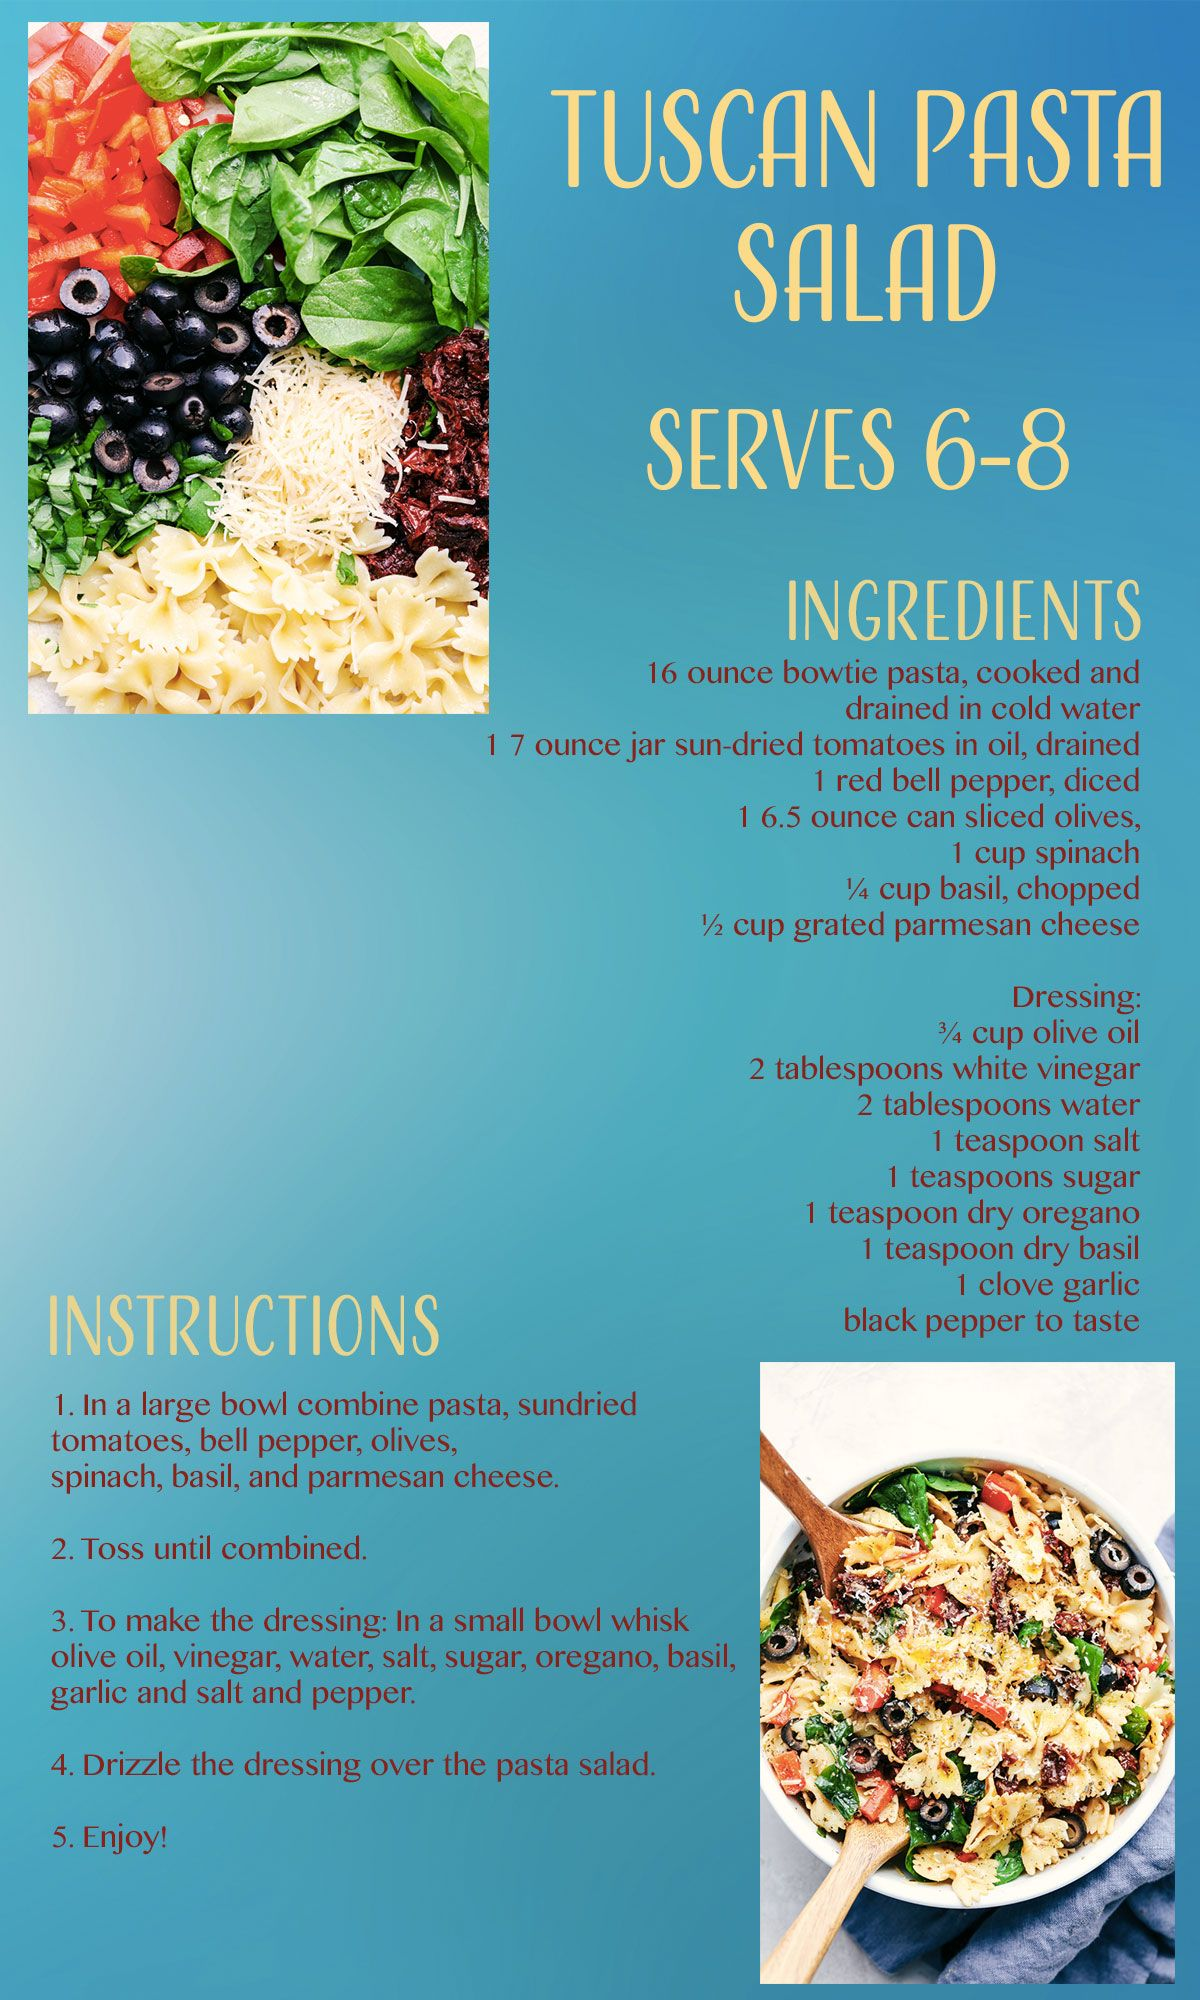 Tuscan Pasta Salad Recipe Card